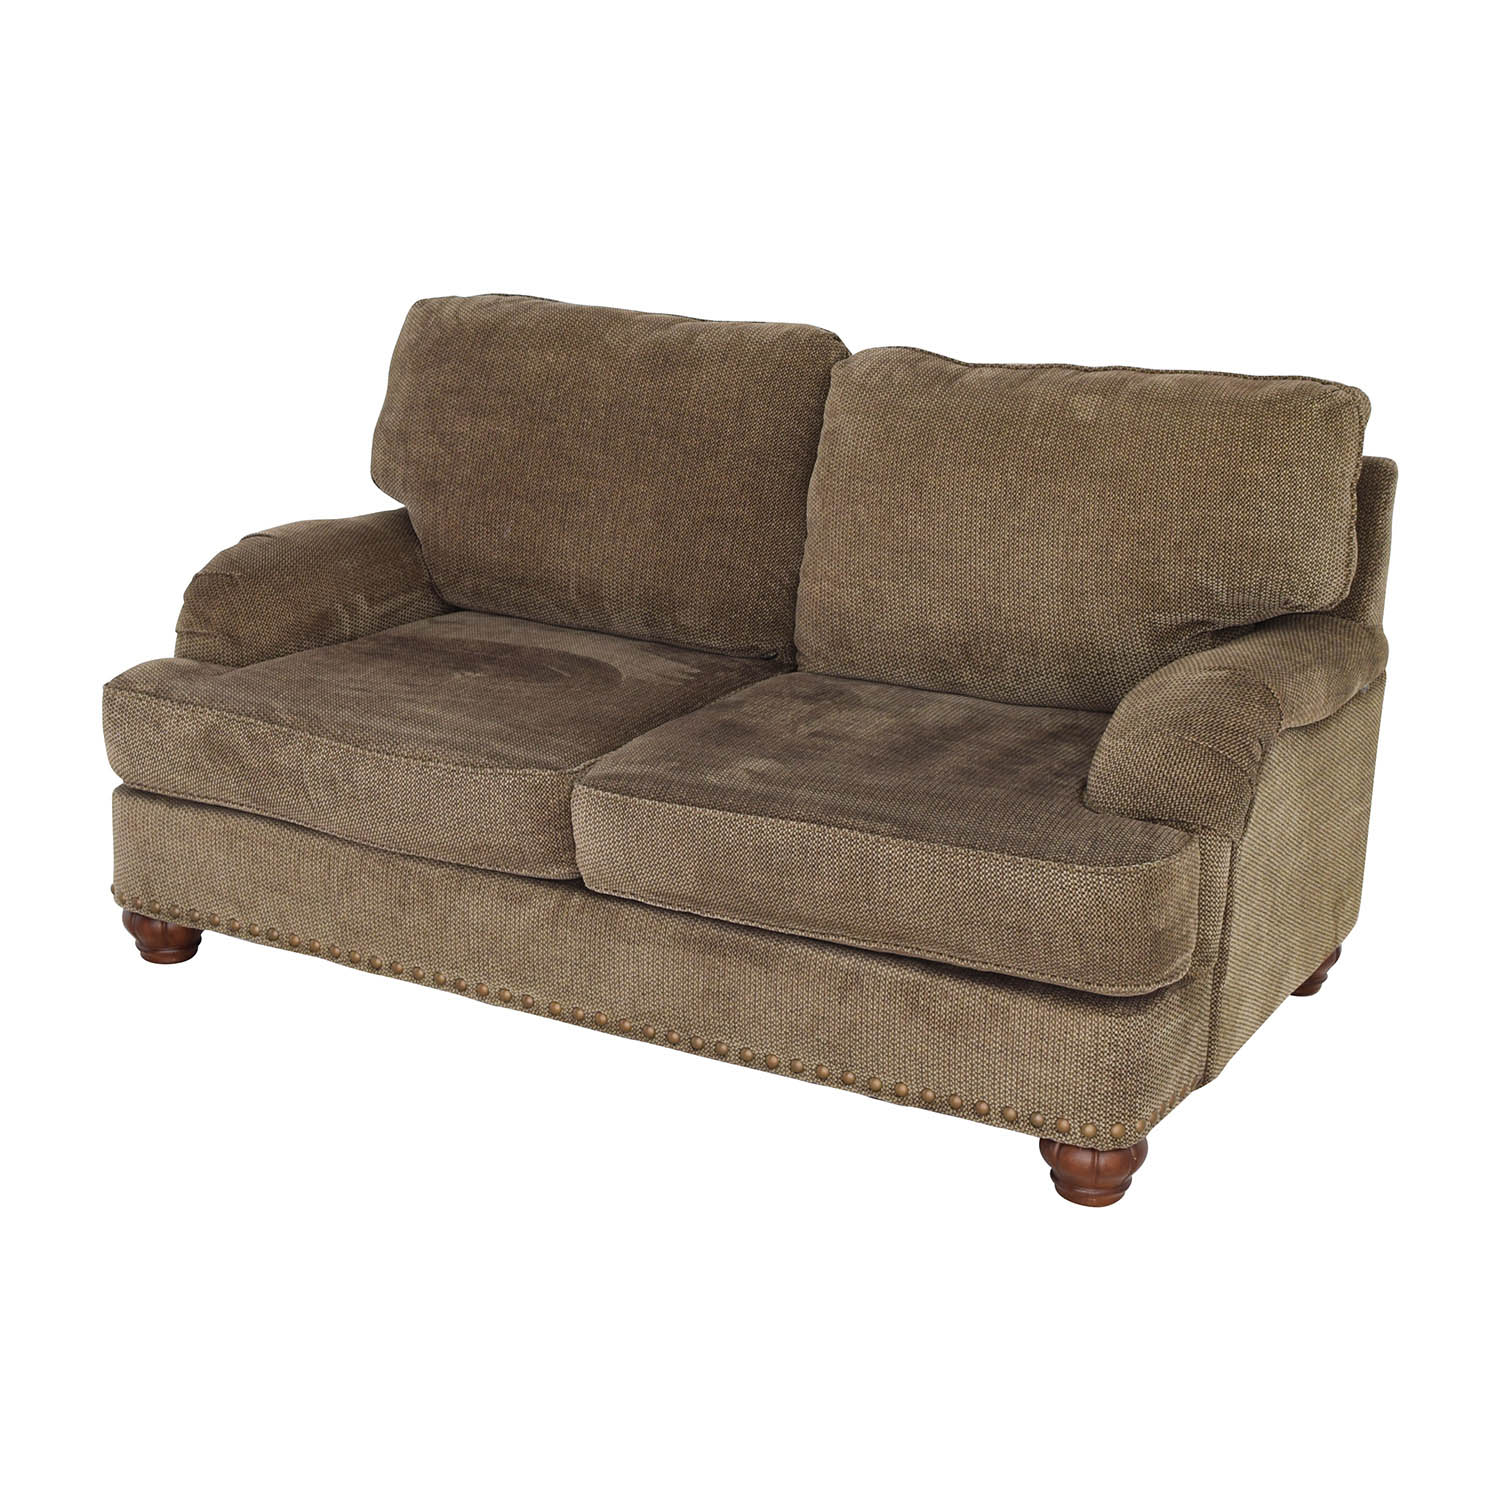 78 off ashley furniture ashley furniture barclay place jewel loveseat sofas Ashley couch and loveseat